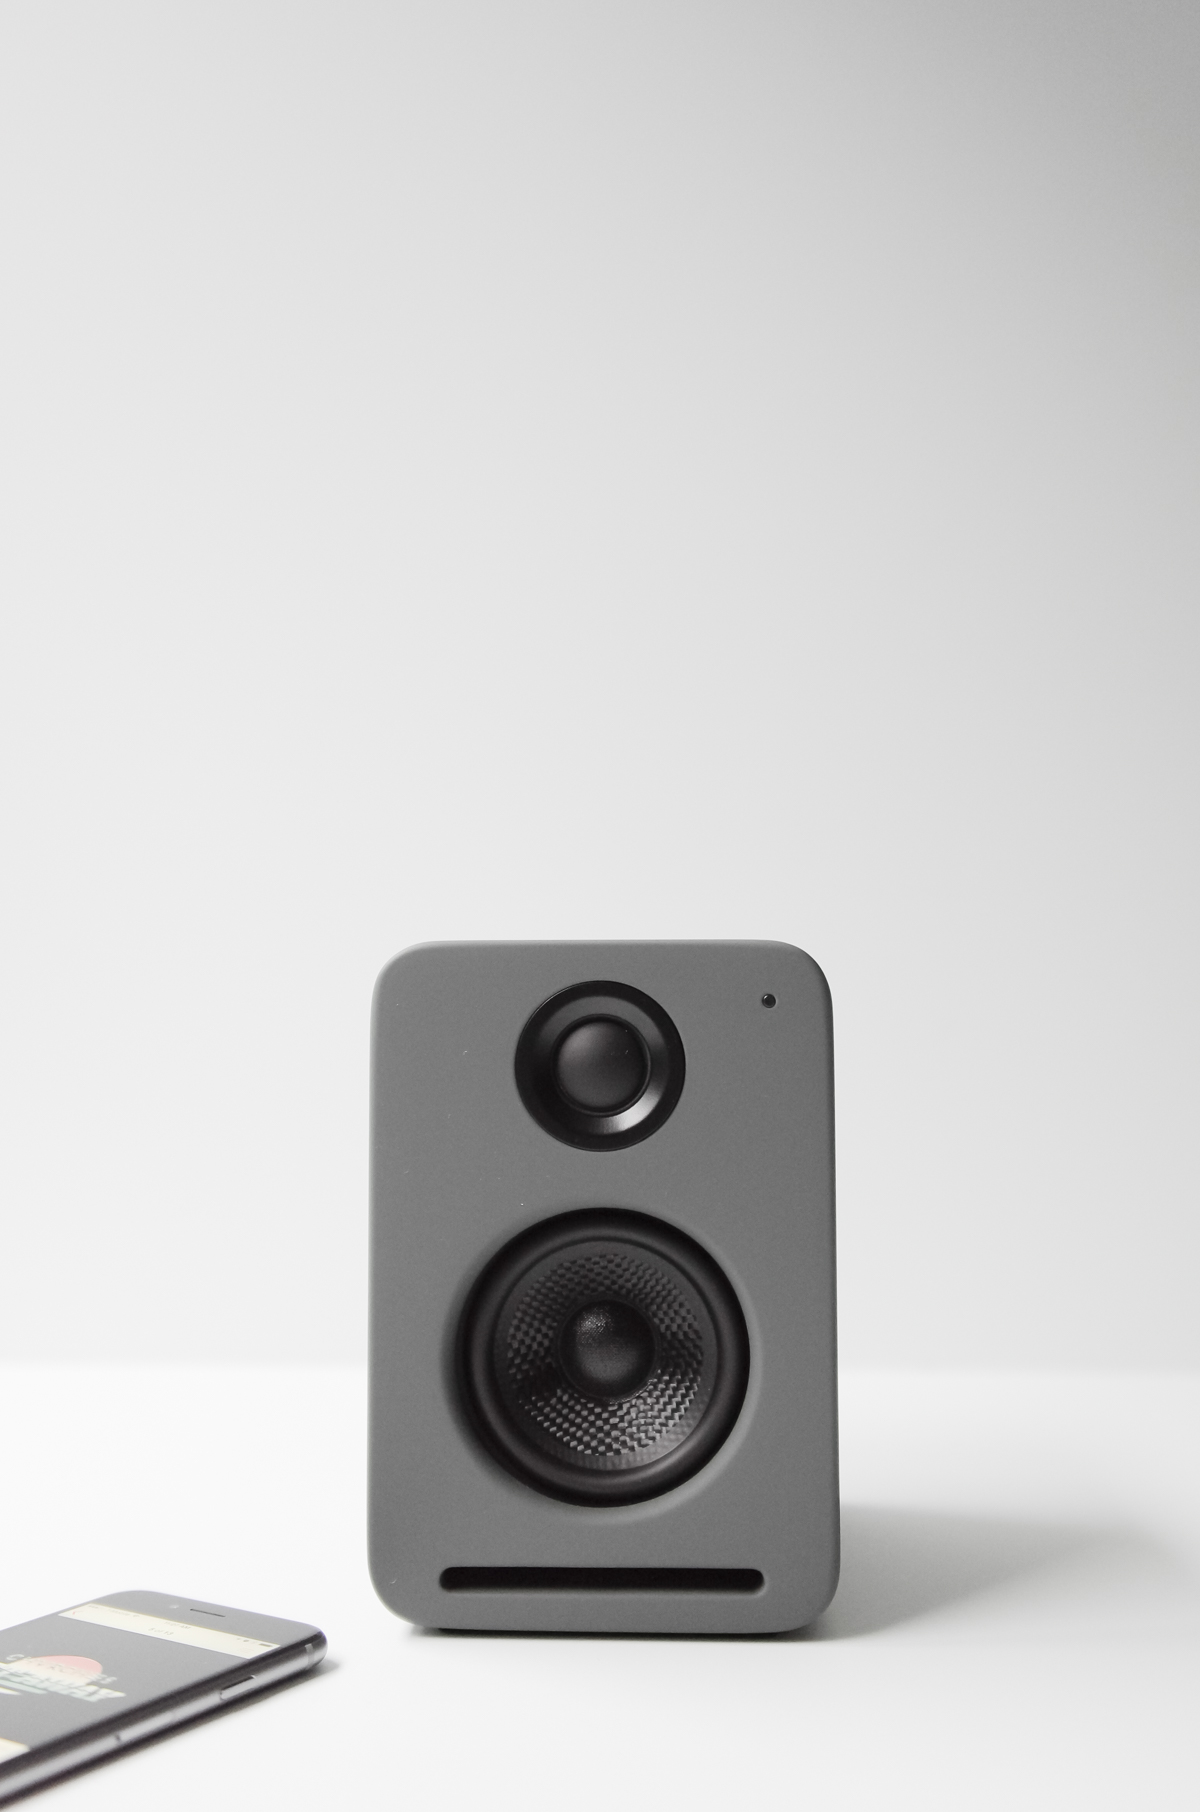 Overall Nocs Has Done A Really Good Job With The NS2 V2 At 400 They Undercut Offerings From Usual Suspect Like Bowers Wilkins And BO Offer